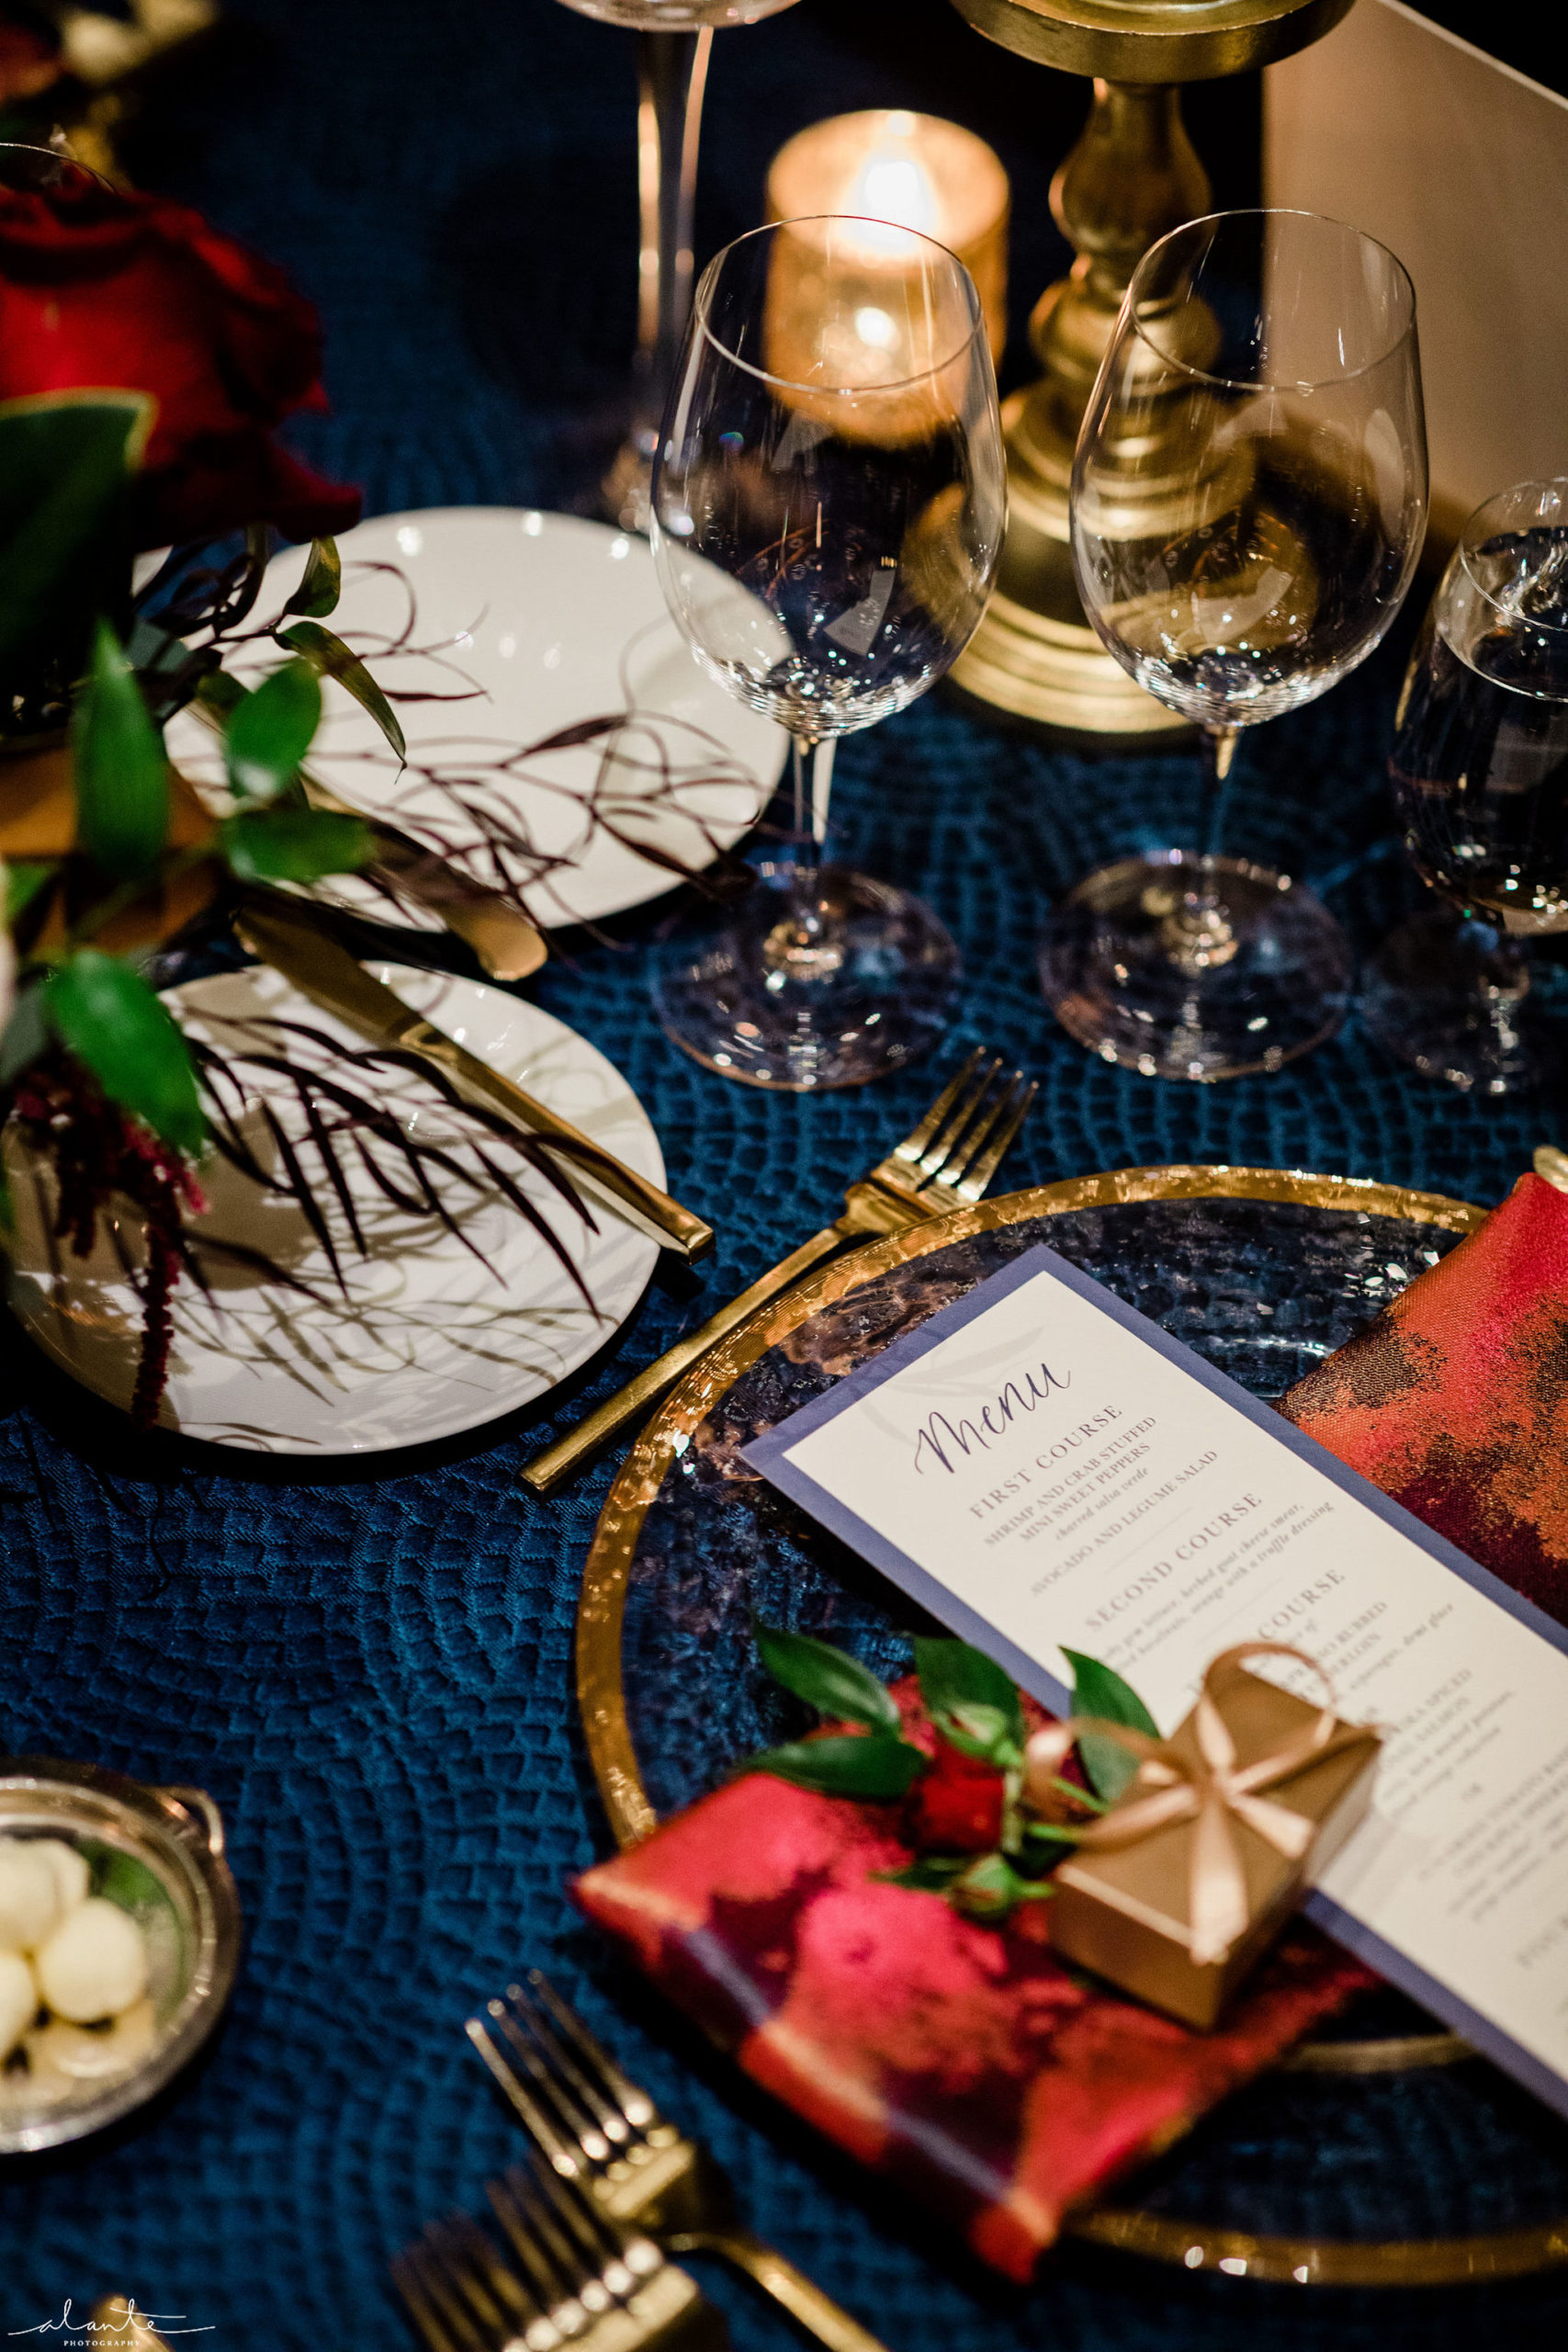 Winter wedding place setting details like a gold wrapped chocolate and red rose at each place setting delight every guest.